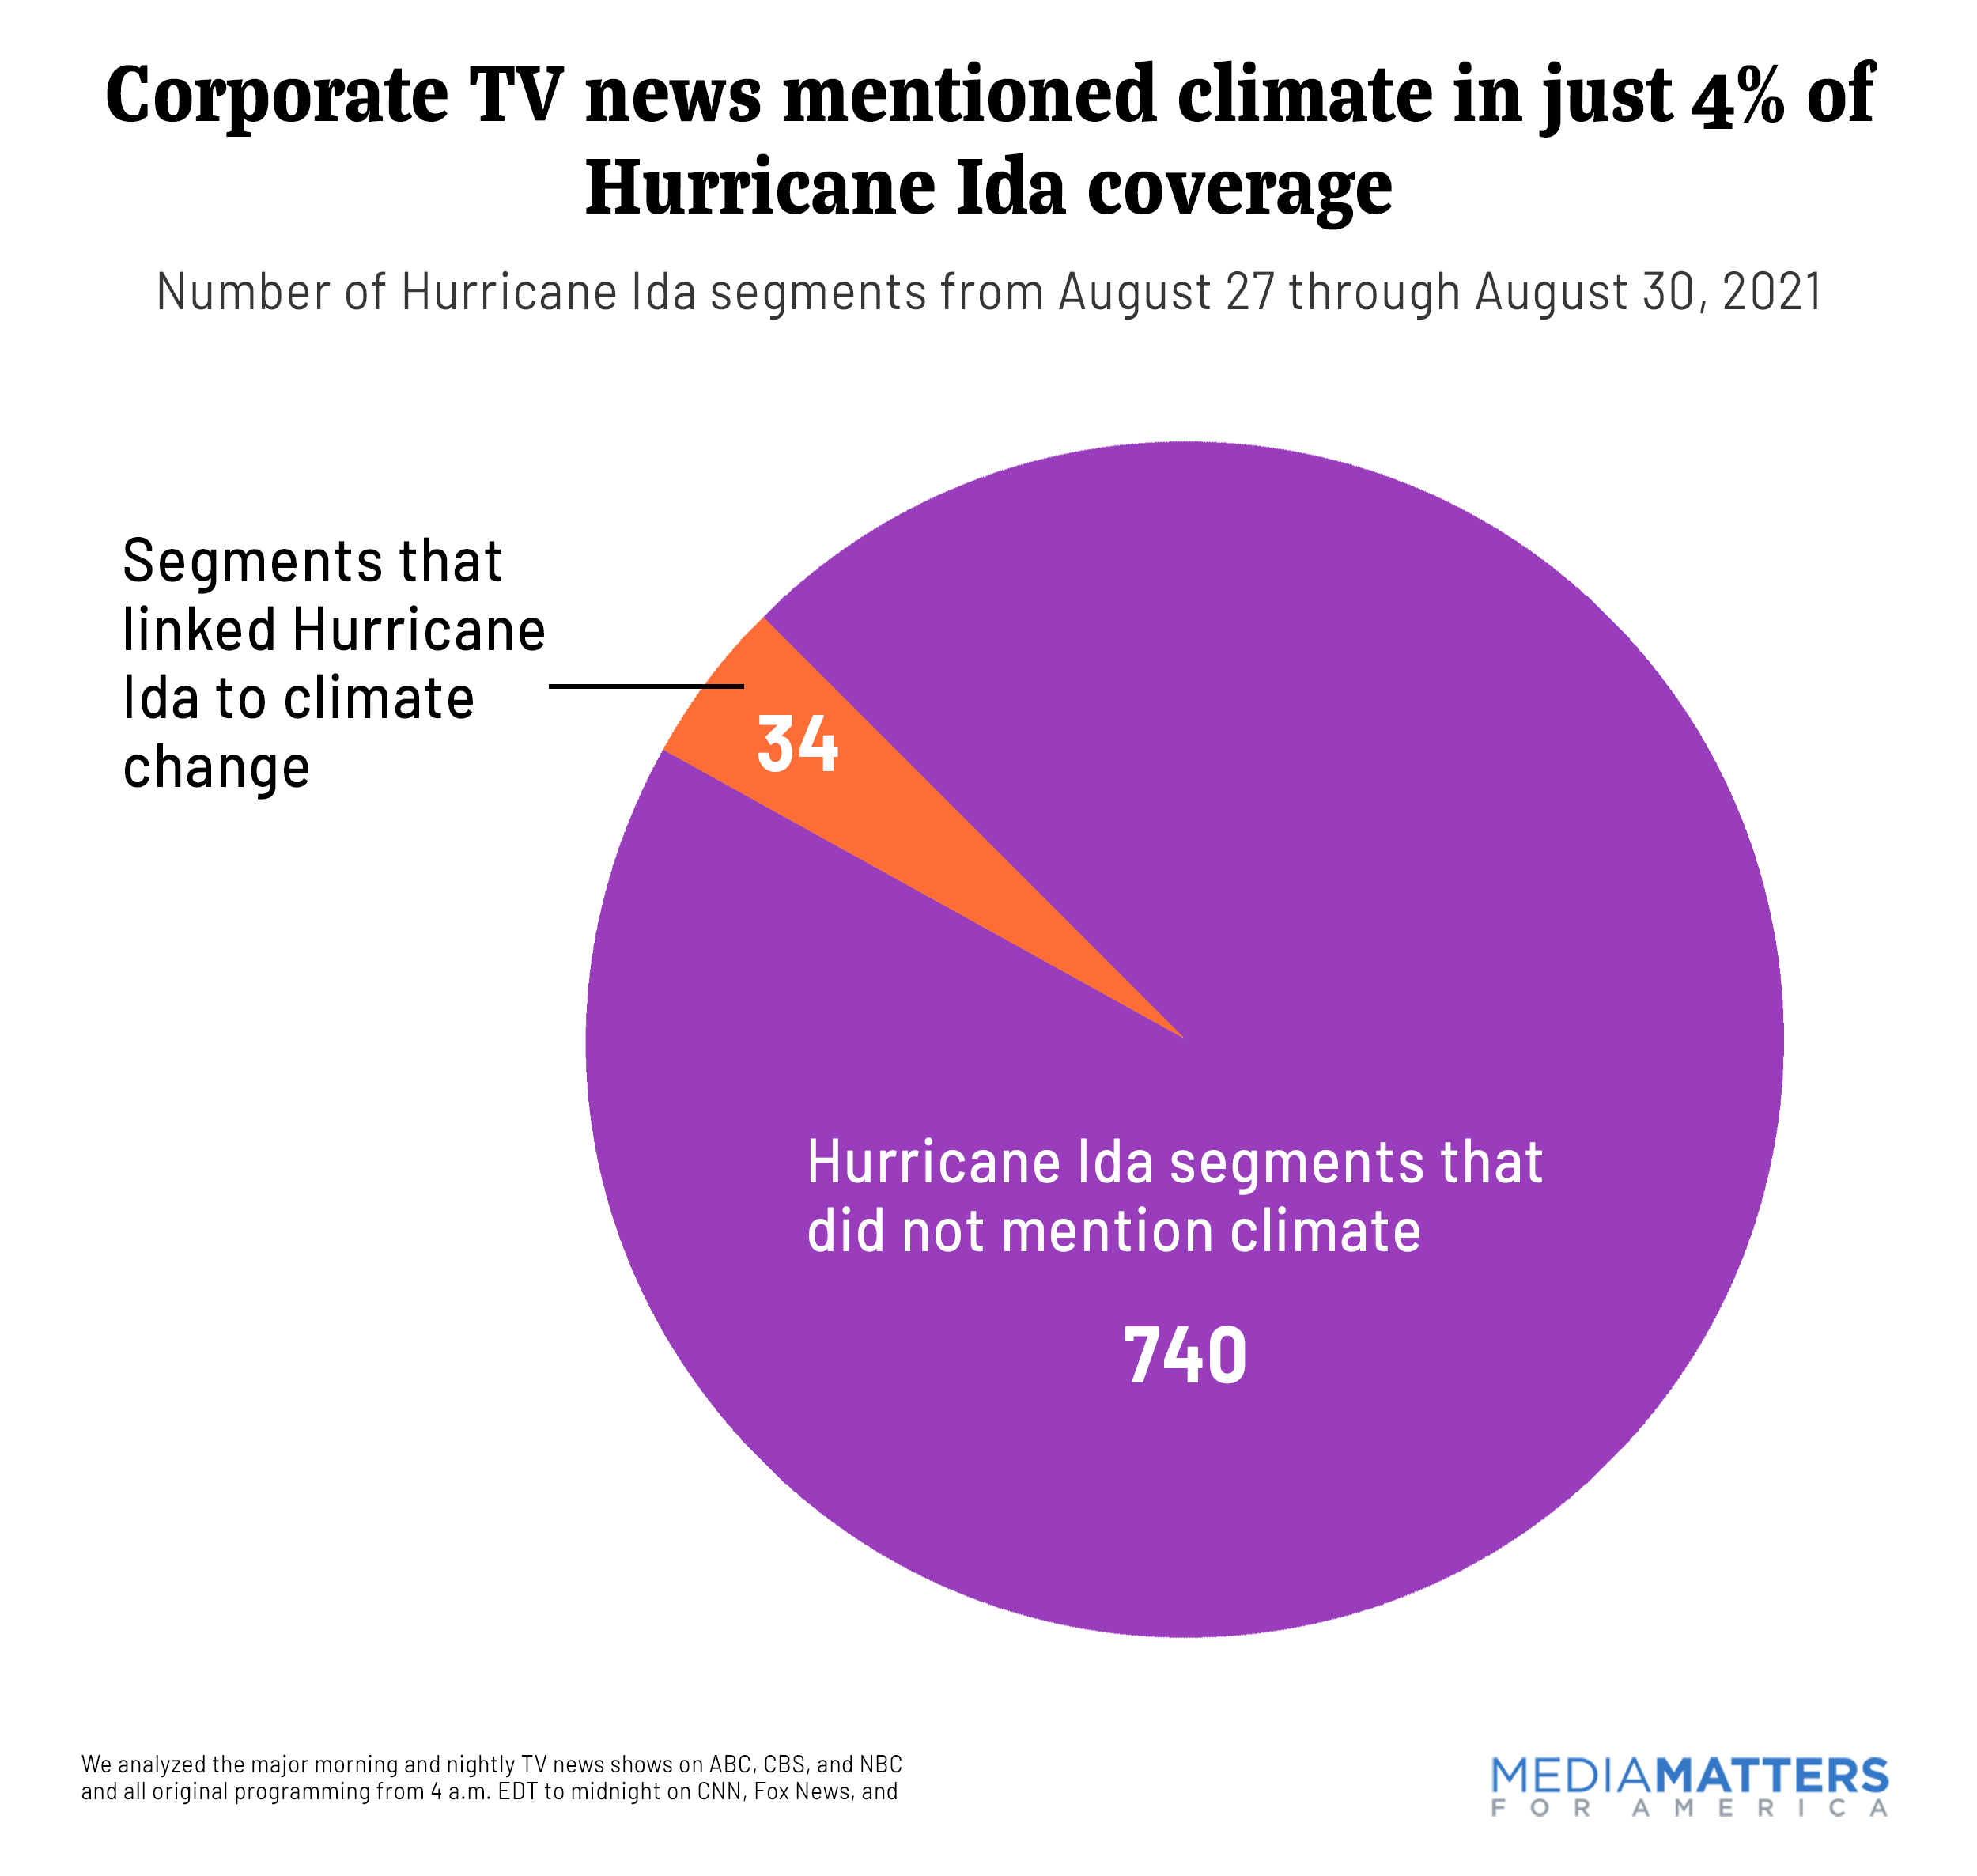 Climate change mentions in Hurricane Ida Coverage